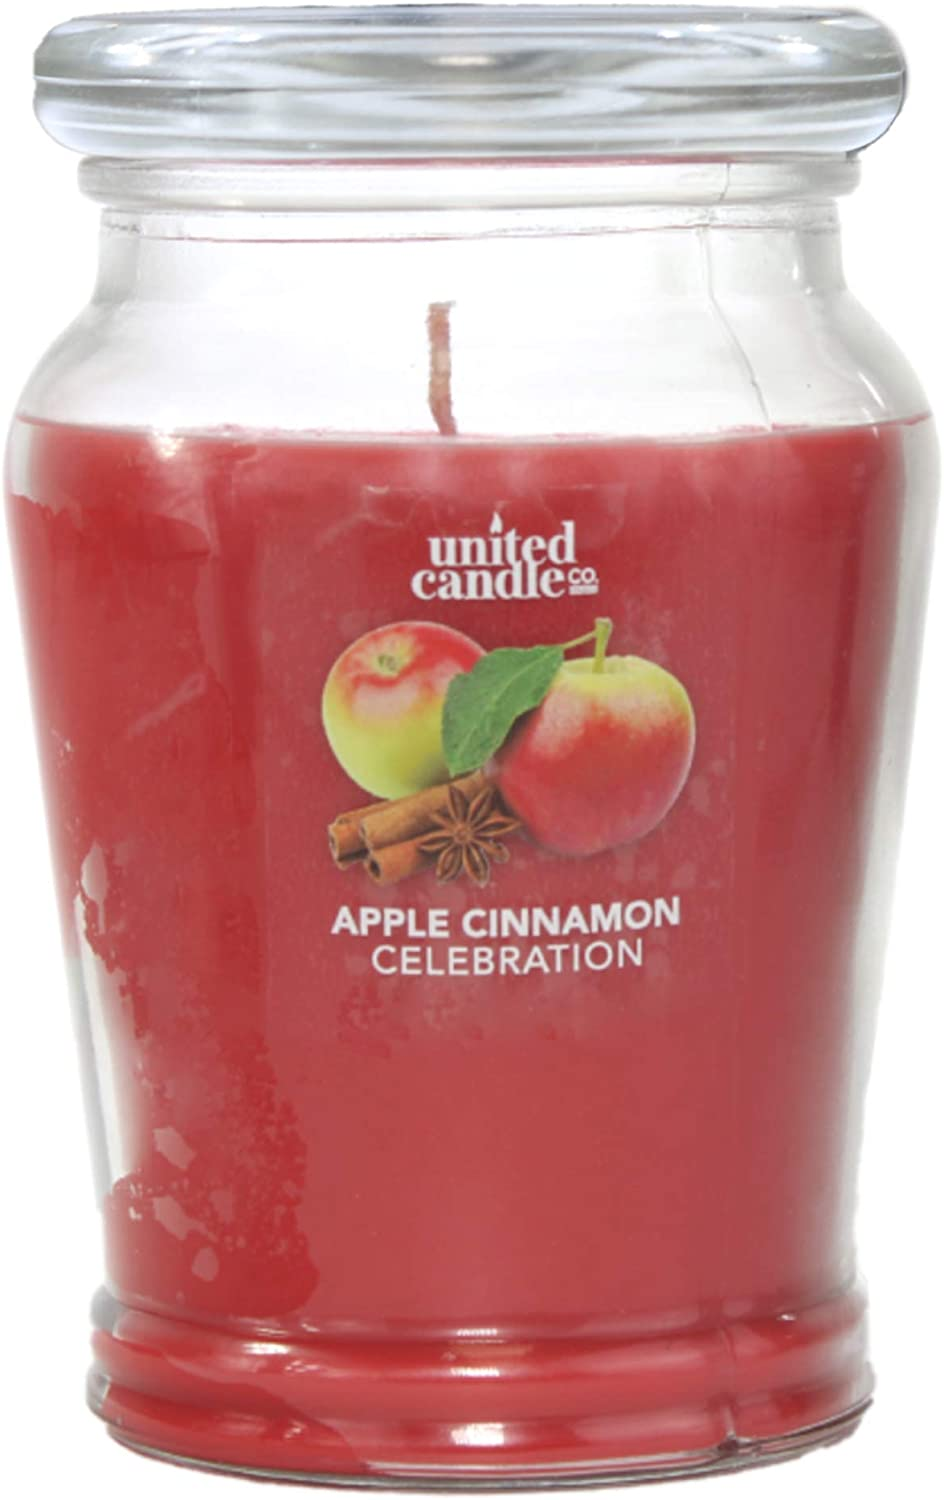 Candle Universe Jar Candles | Scented Holiday Candles | Richly Fragranced 12 oz - Apple Cinnamon Celebration